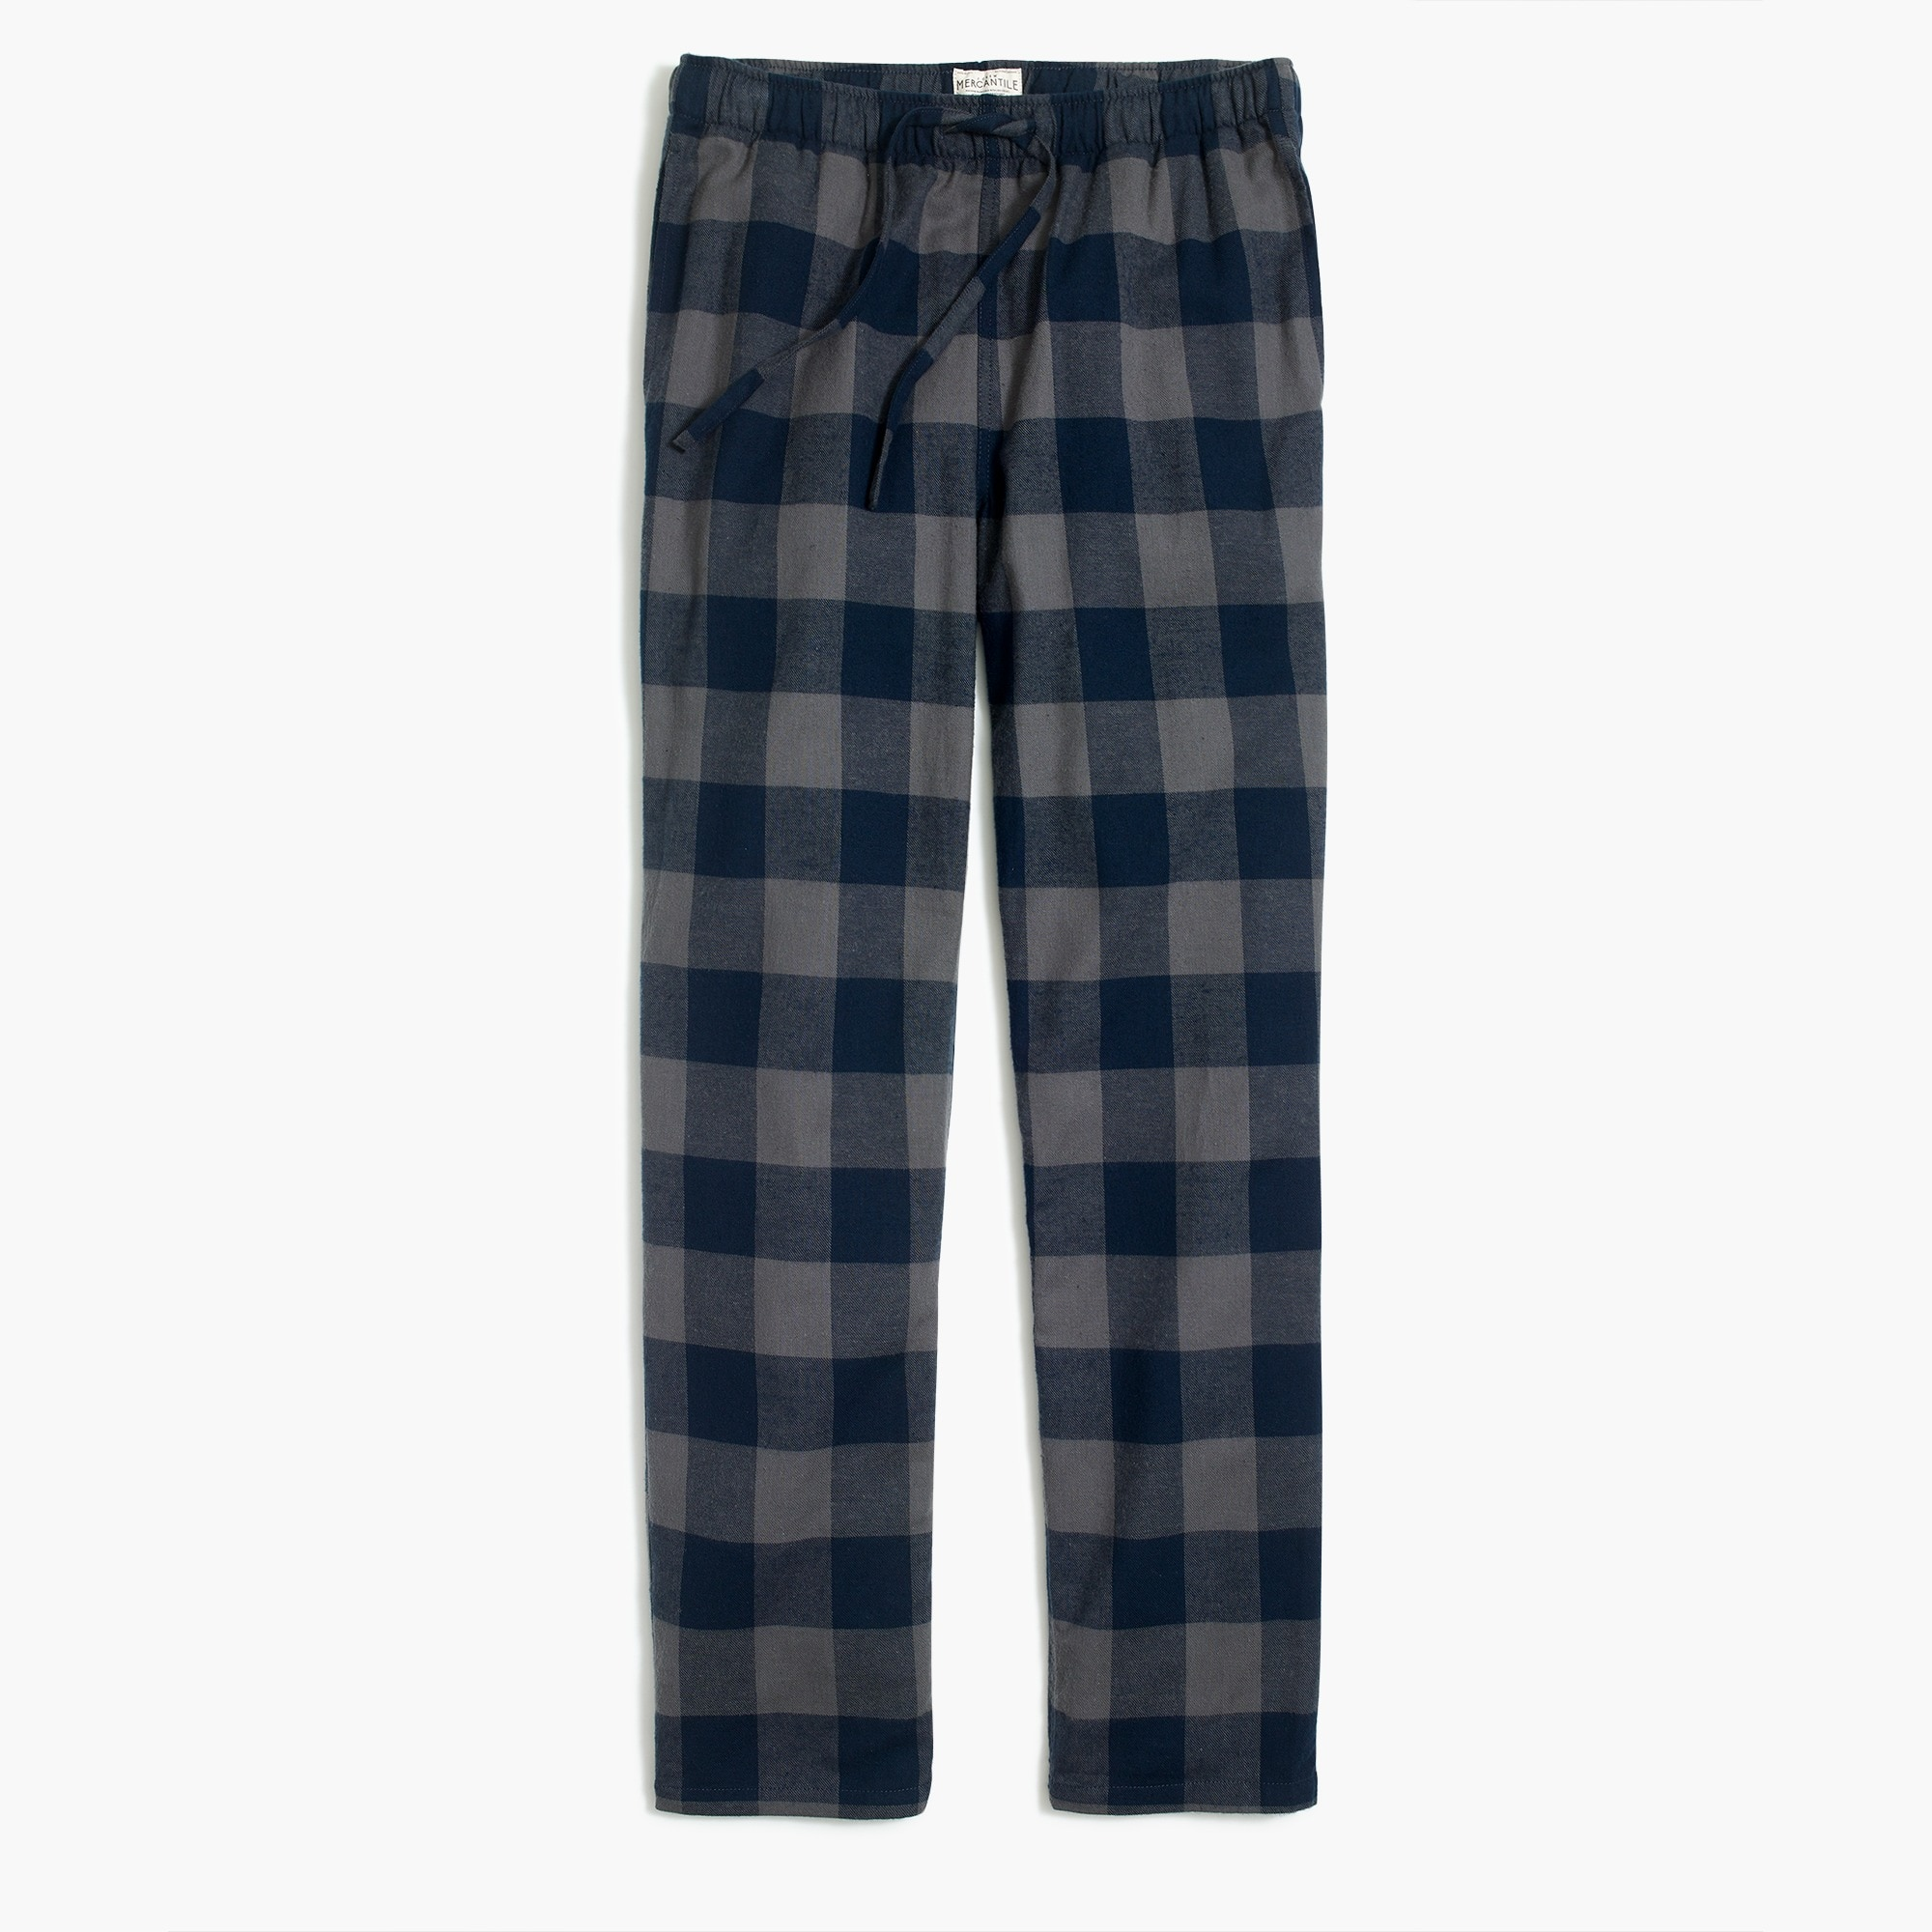 Flannel pajama pant in blue buffalo check